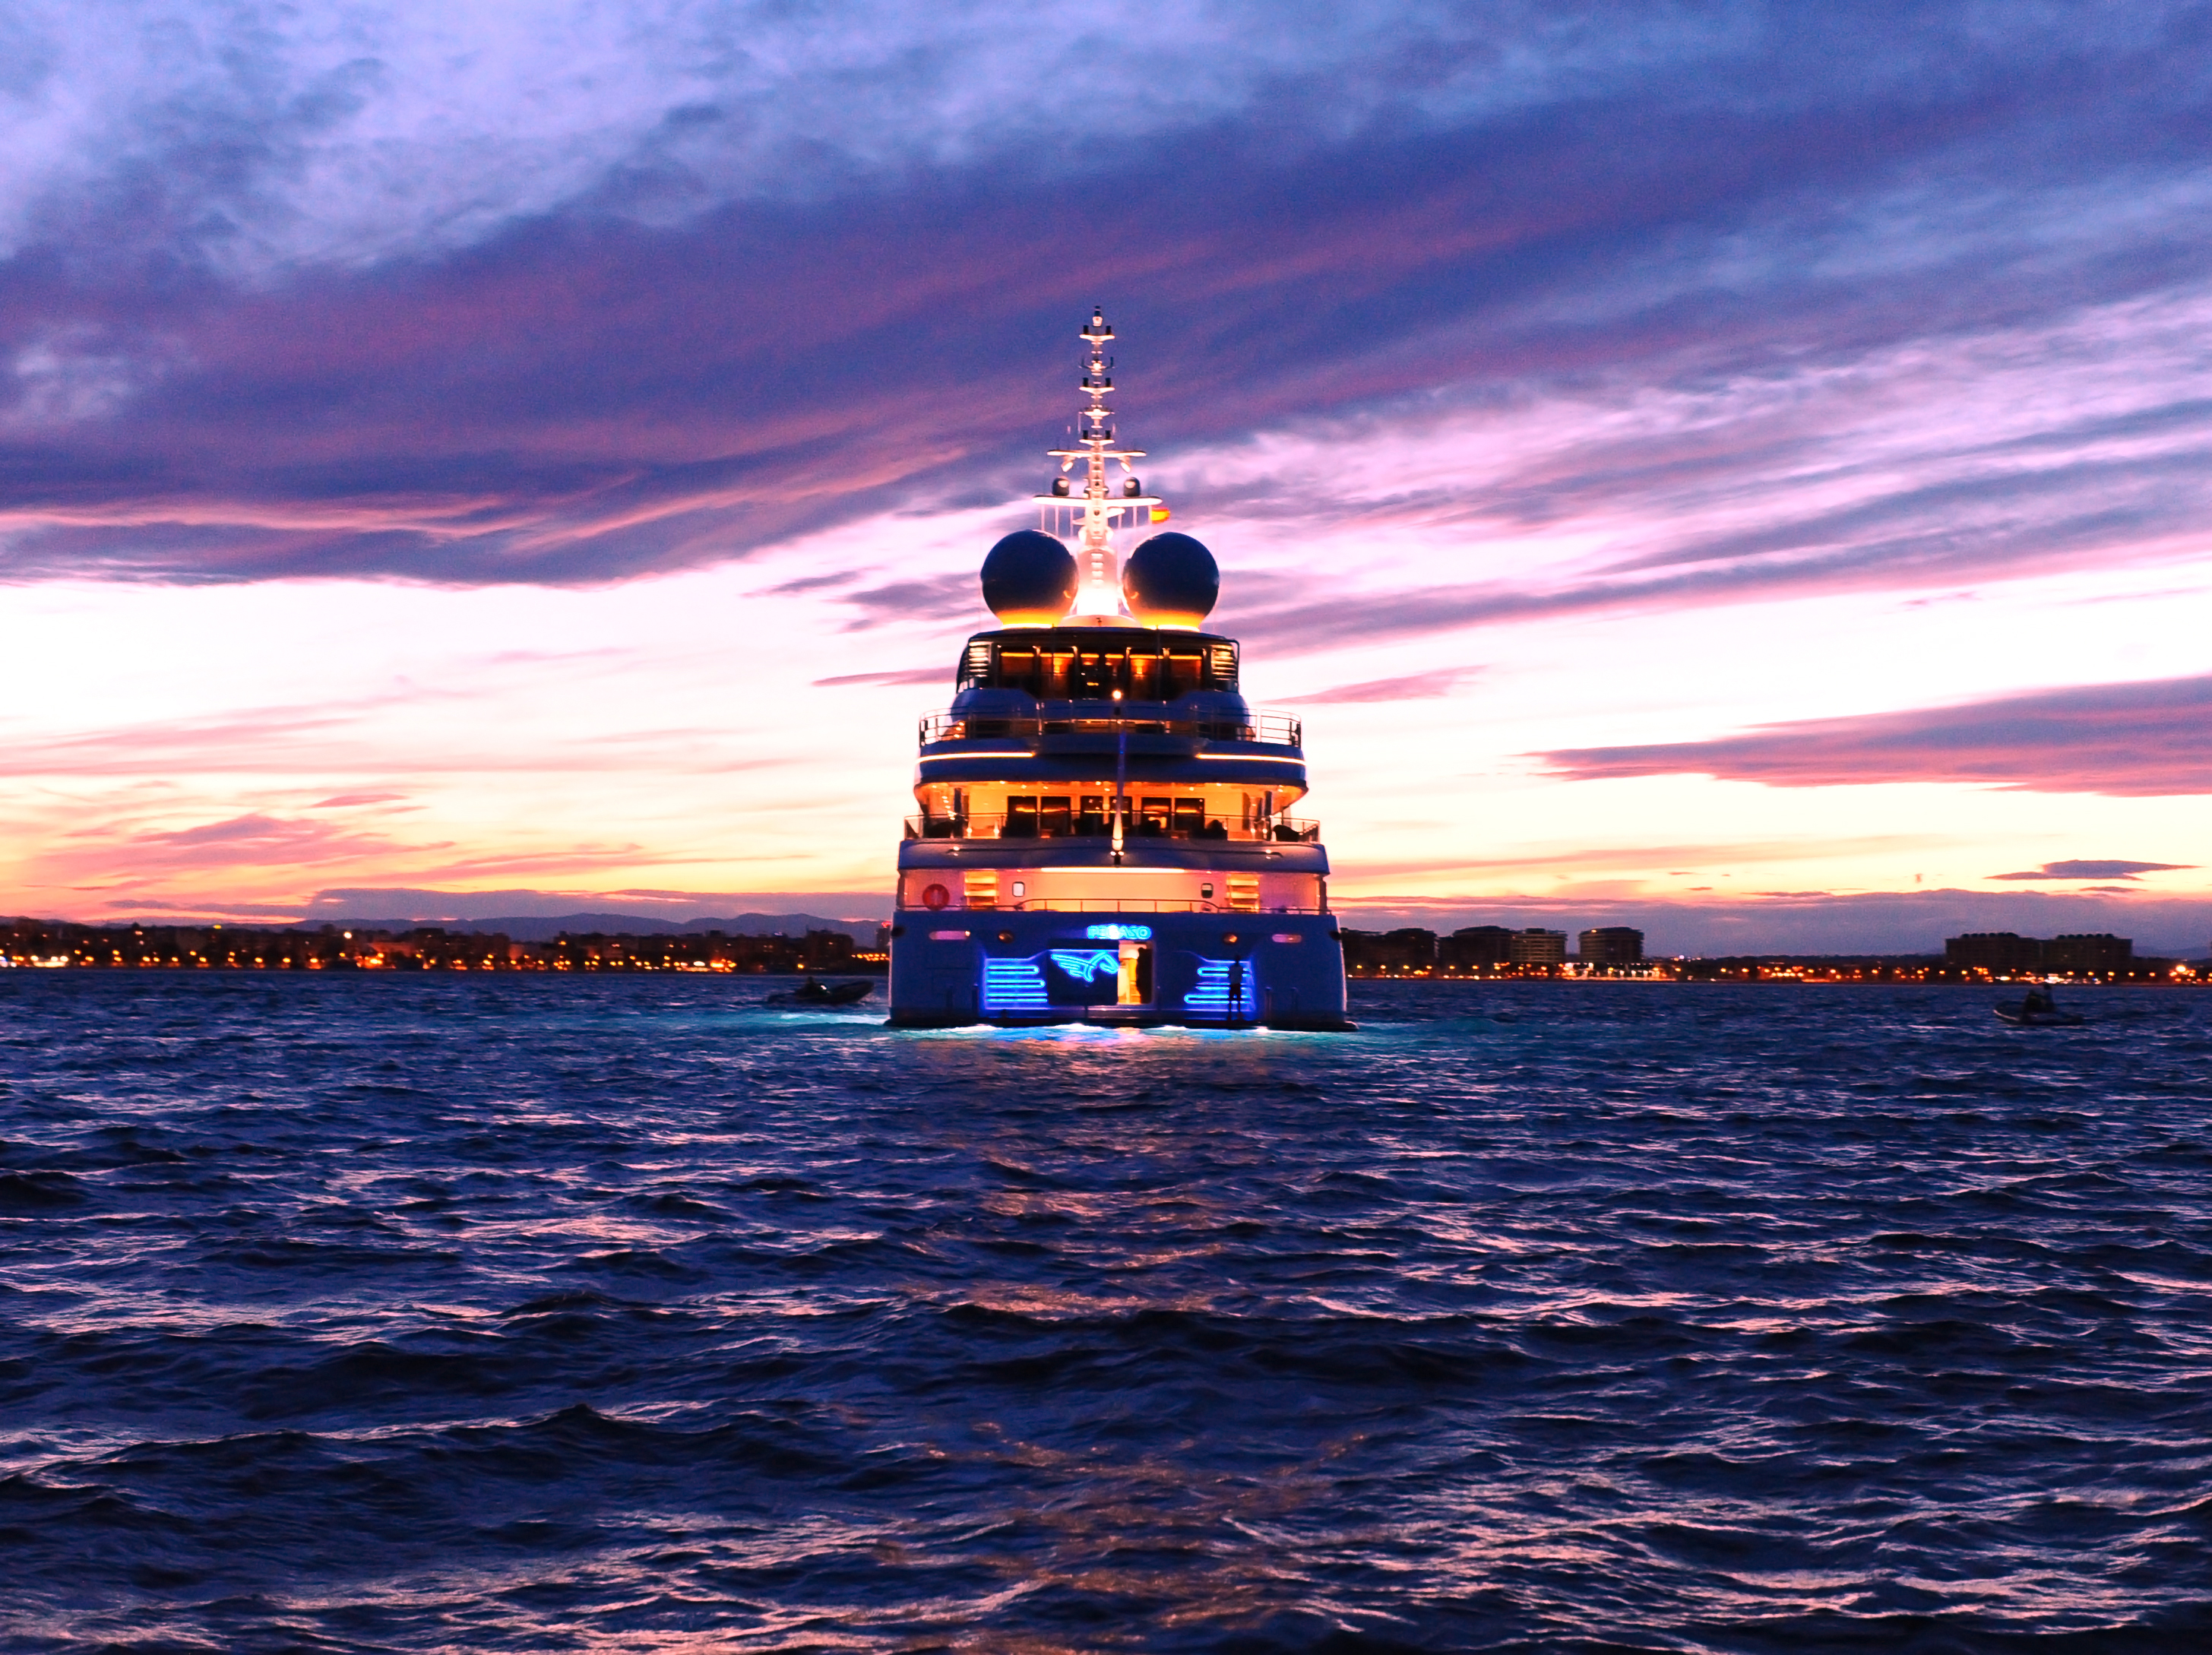 More than a holiday: The luxury superyacht that doubles as a